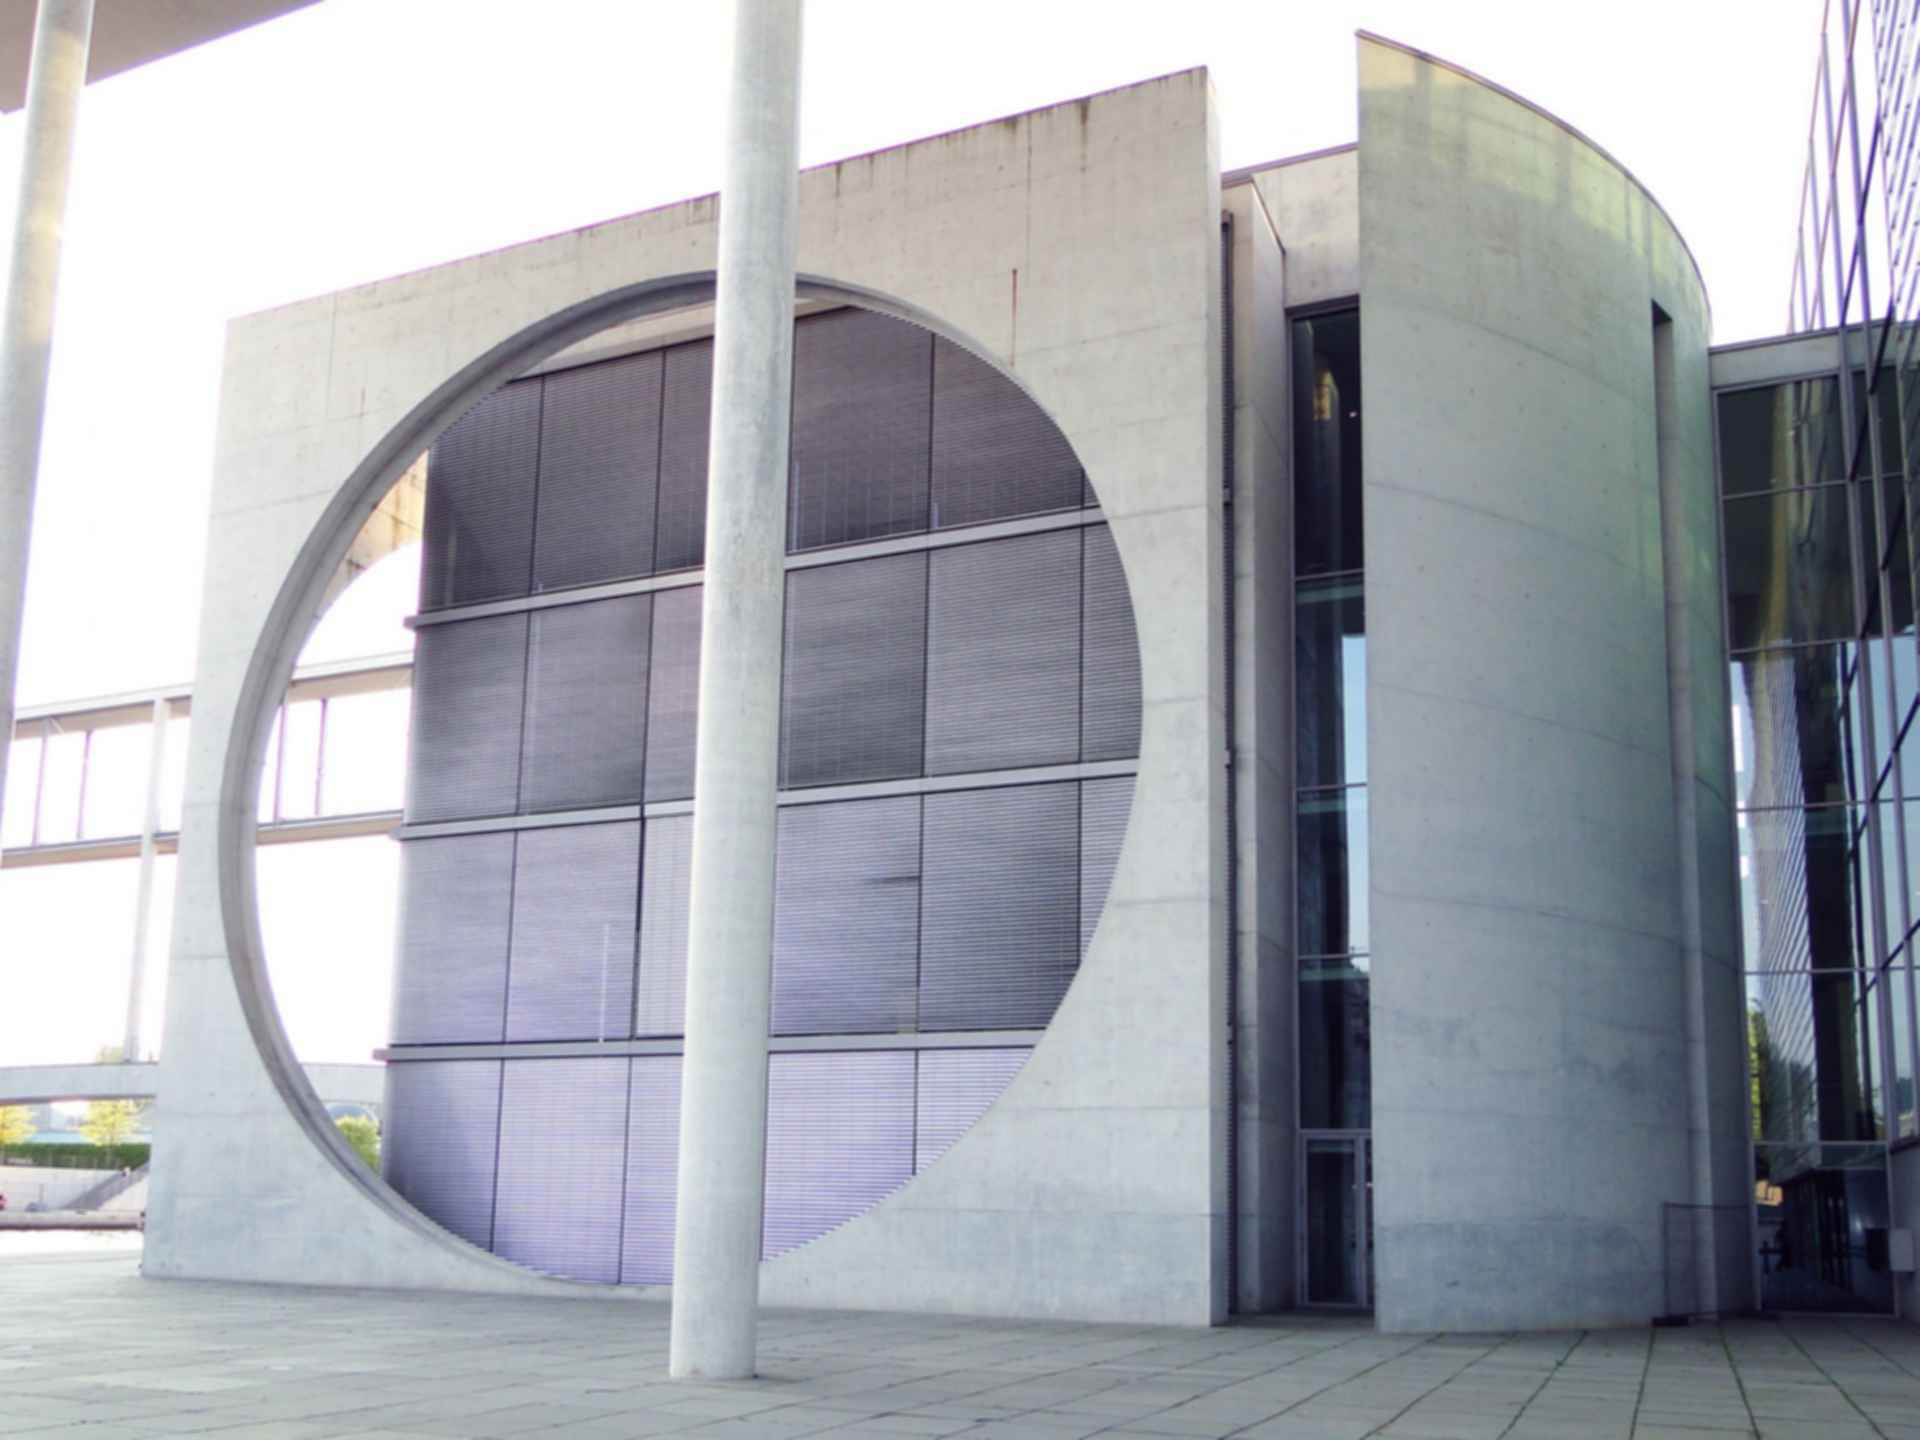 German Chancellery - Structure